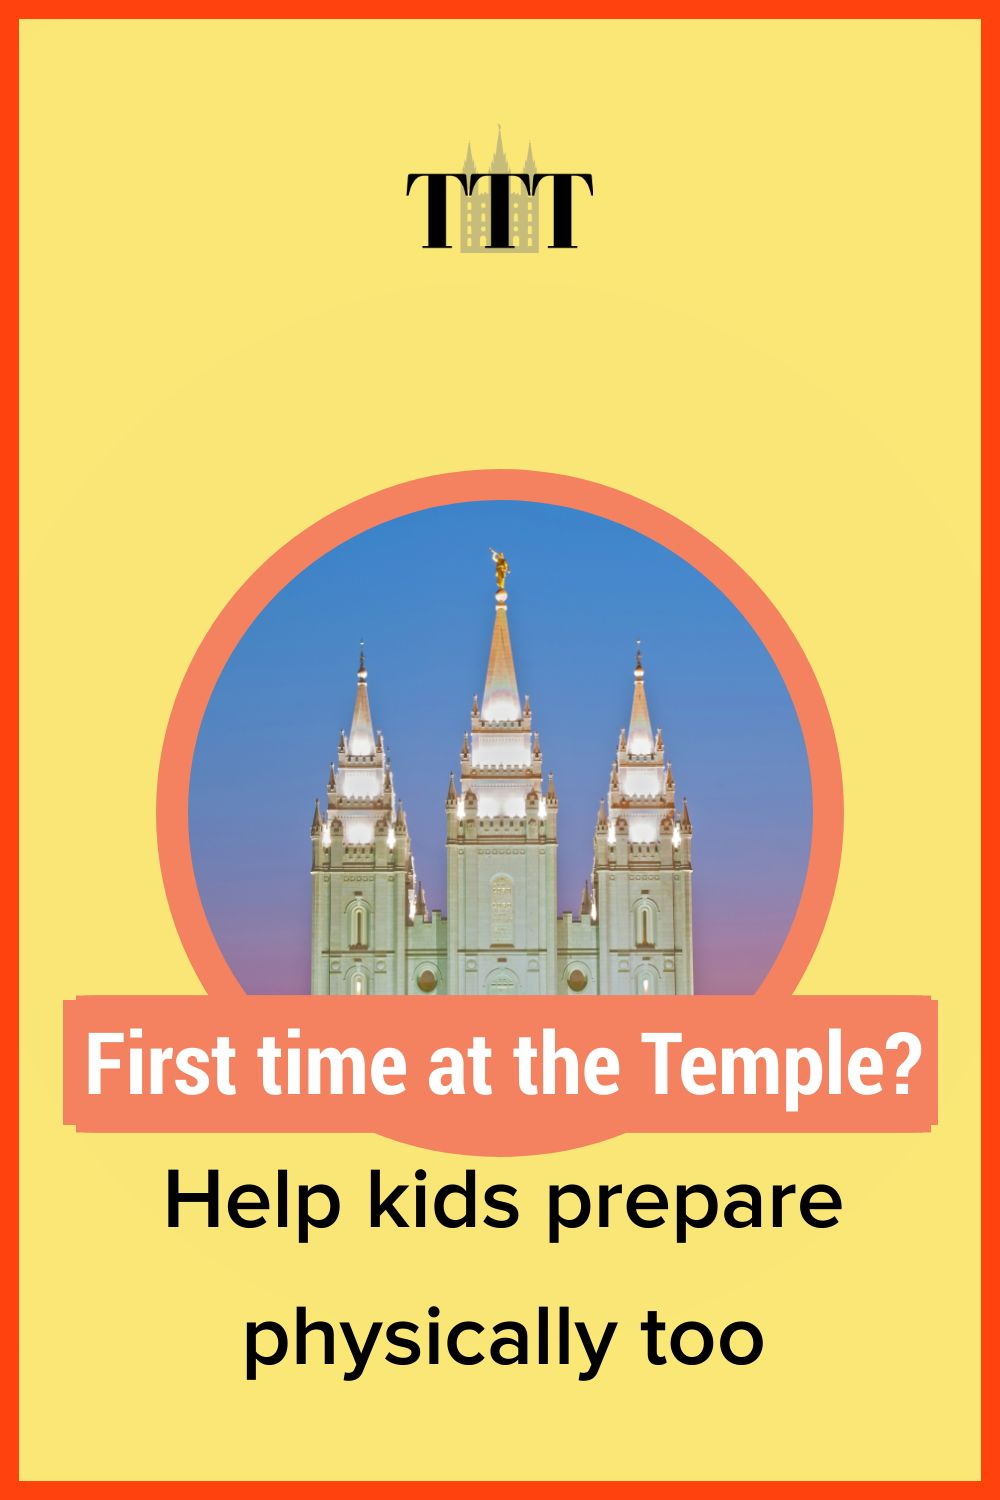 First time at the Temple? Help kids prepare physically too